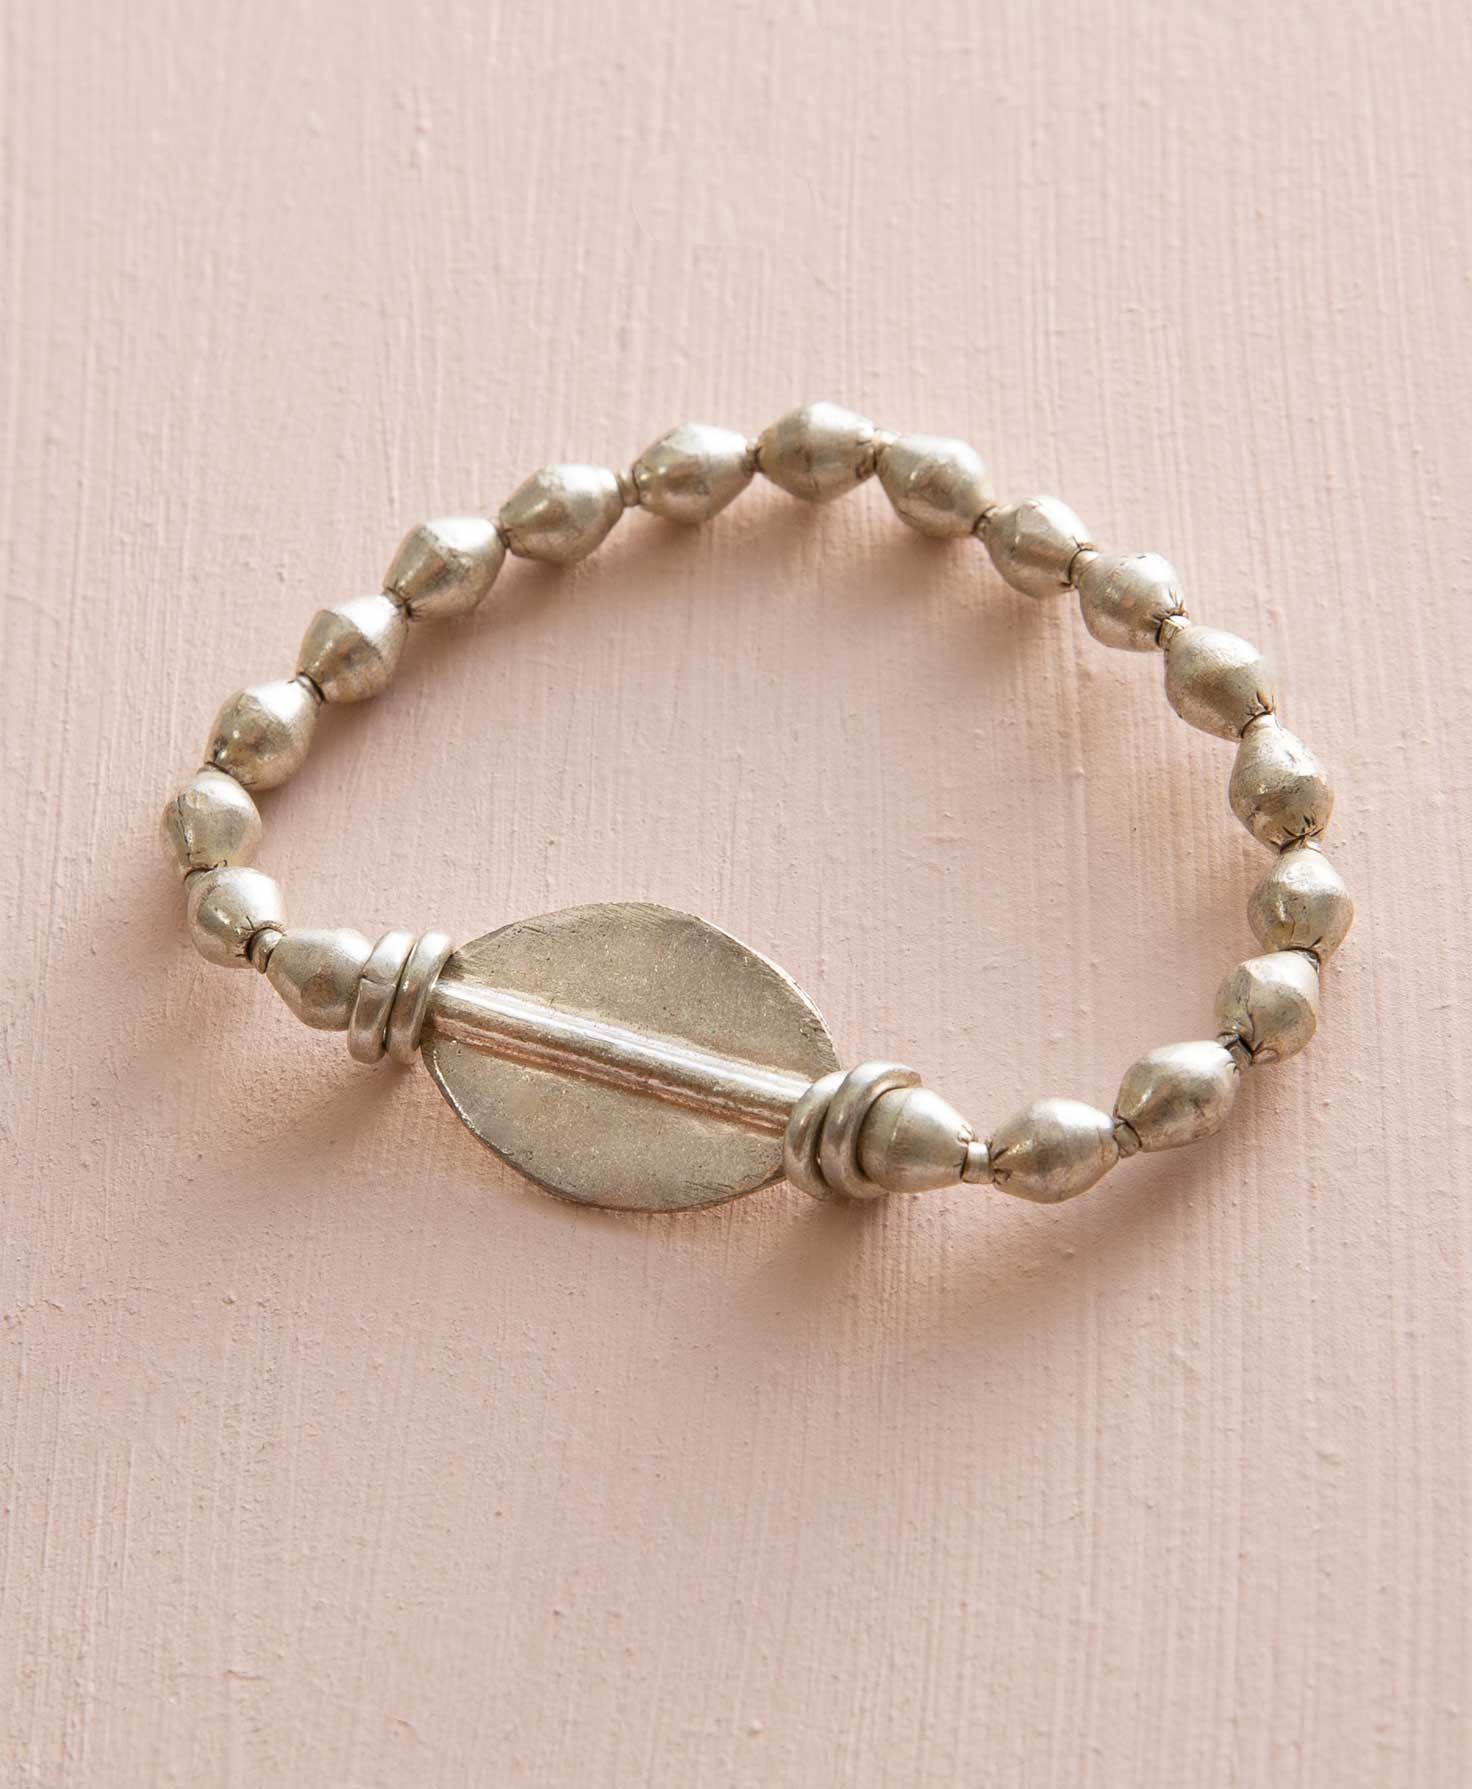 The Comrade Bracelet lies on a cream background. It is a stretchy bracelet strung with silver beads formed from upcycled artillery and mixed metal. The beads are widest at their center, and then they taper down on either side. At the center of the bracelet is a larger silver piece. It is flat and shaped like a rounded diamond, similar to the small beads but on a larger scale. A silver bar runs horizontally through its center.